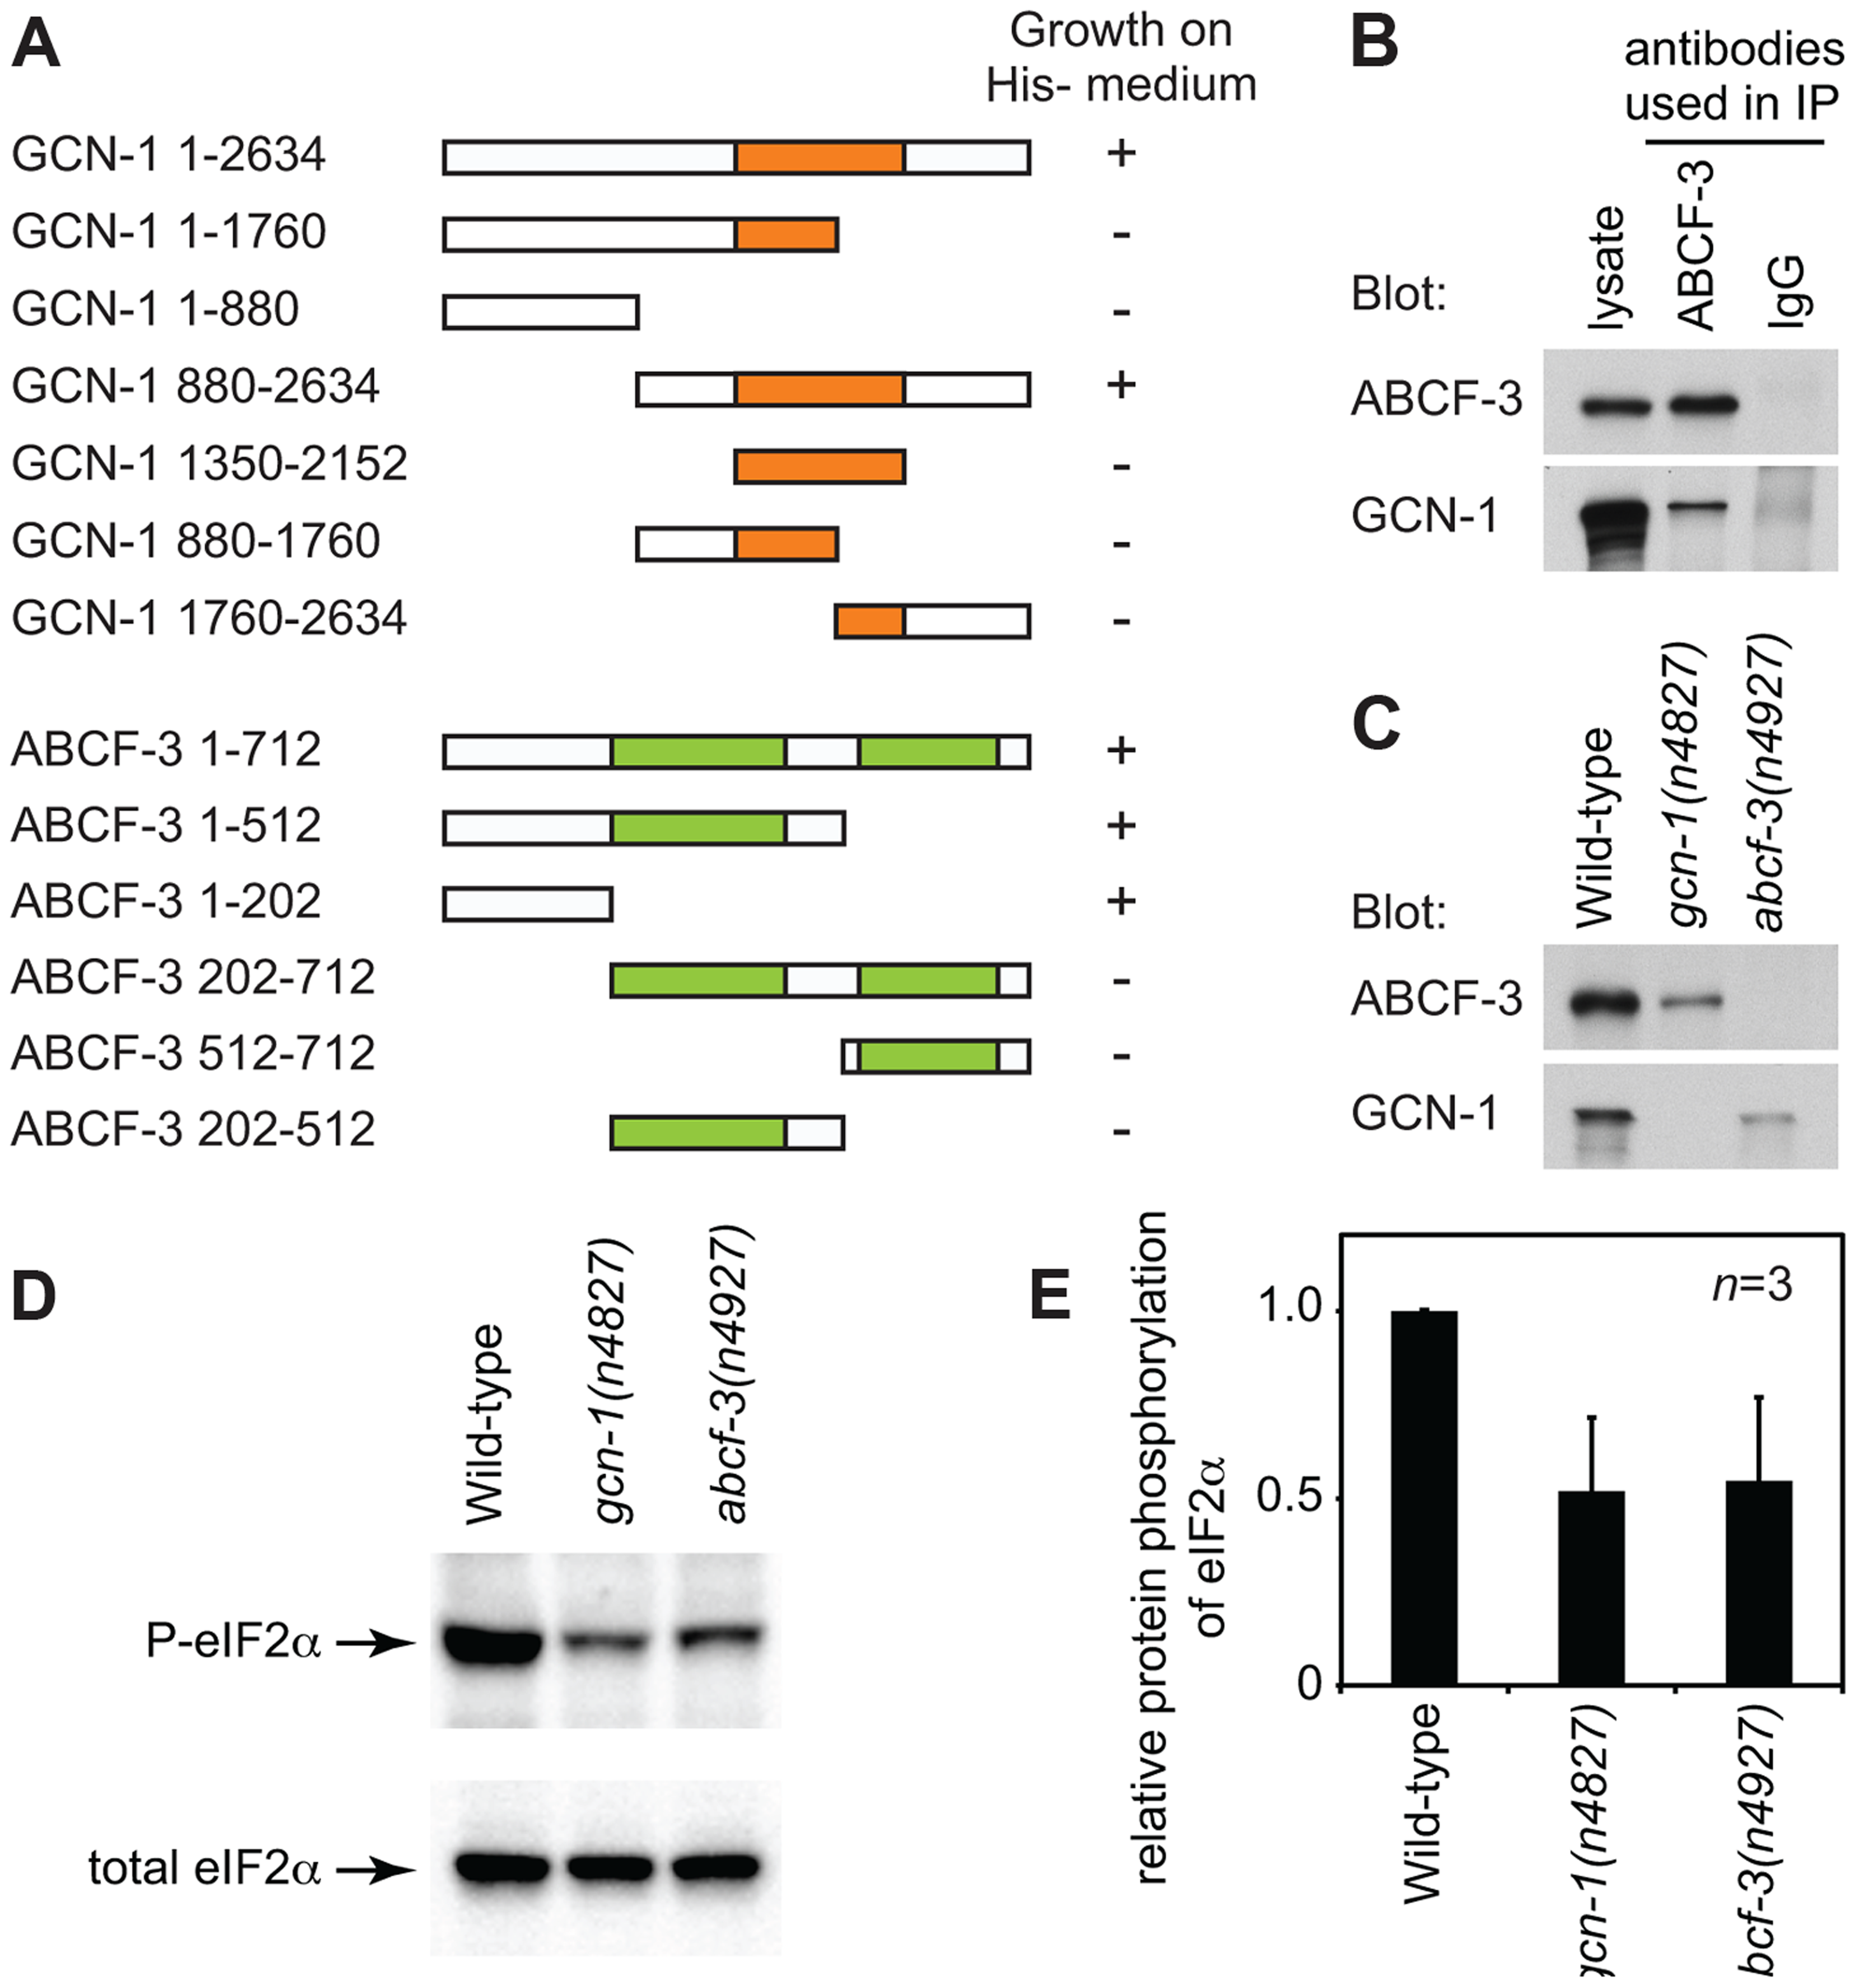 GCN-1 and ABCF-3 proteins are evolutionarily conserved functionally.